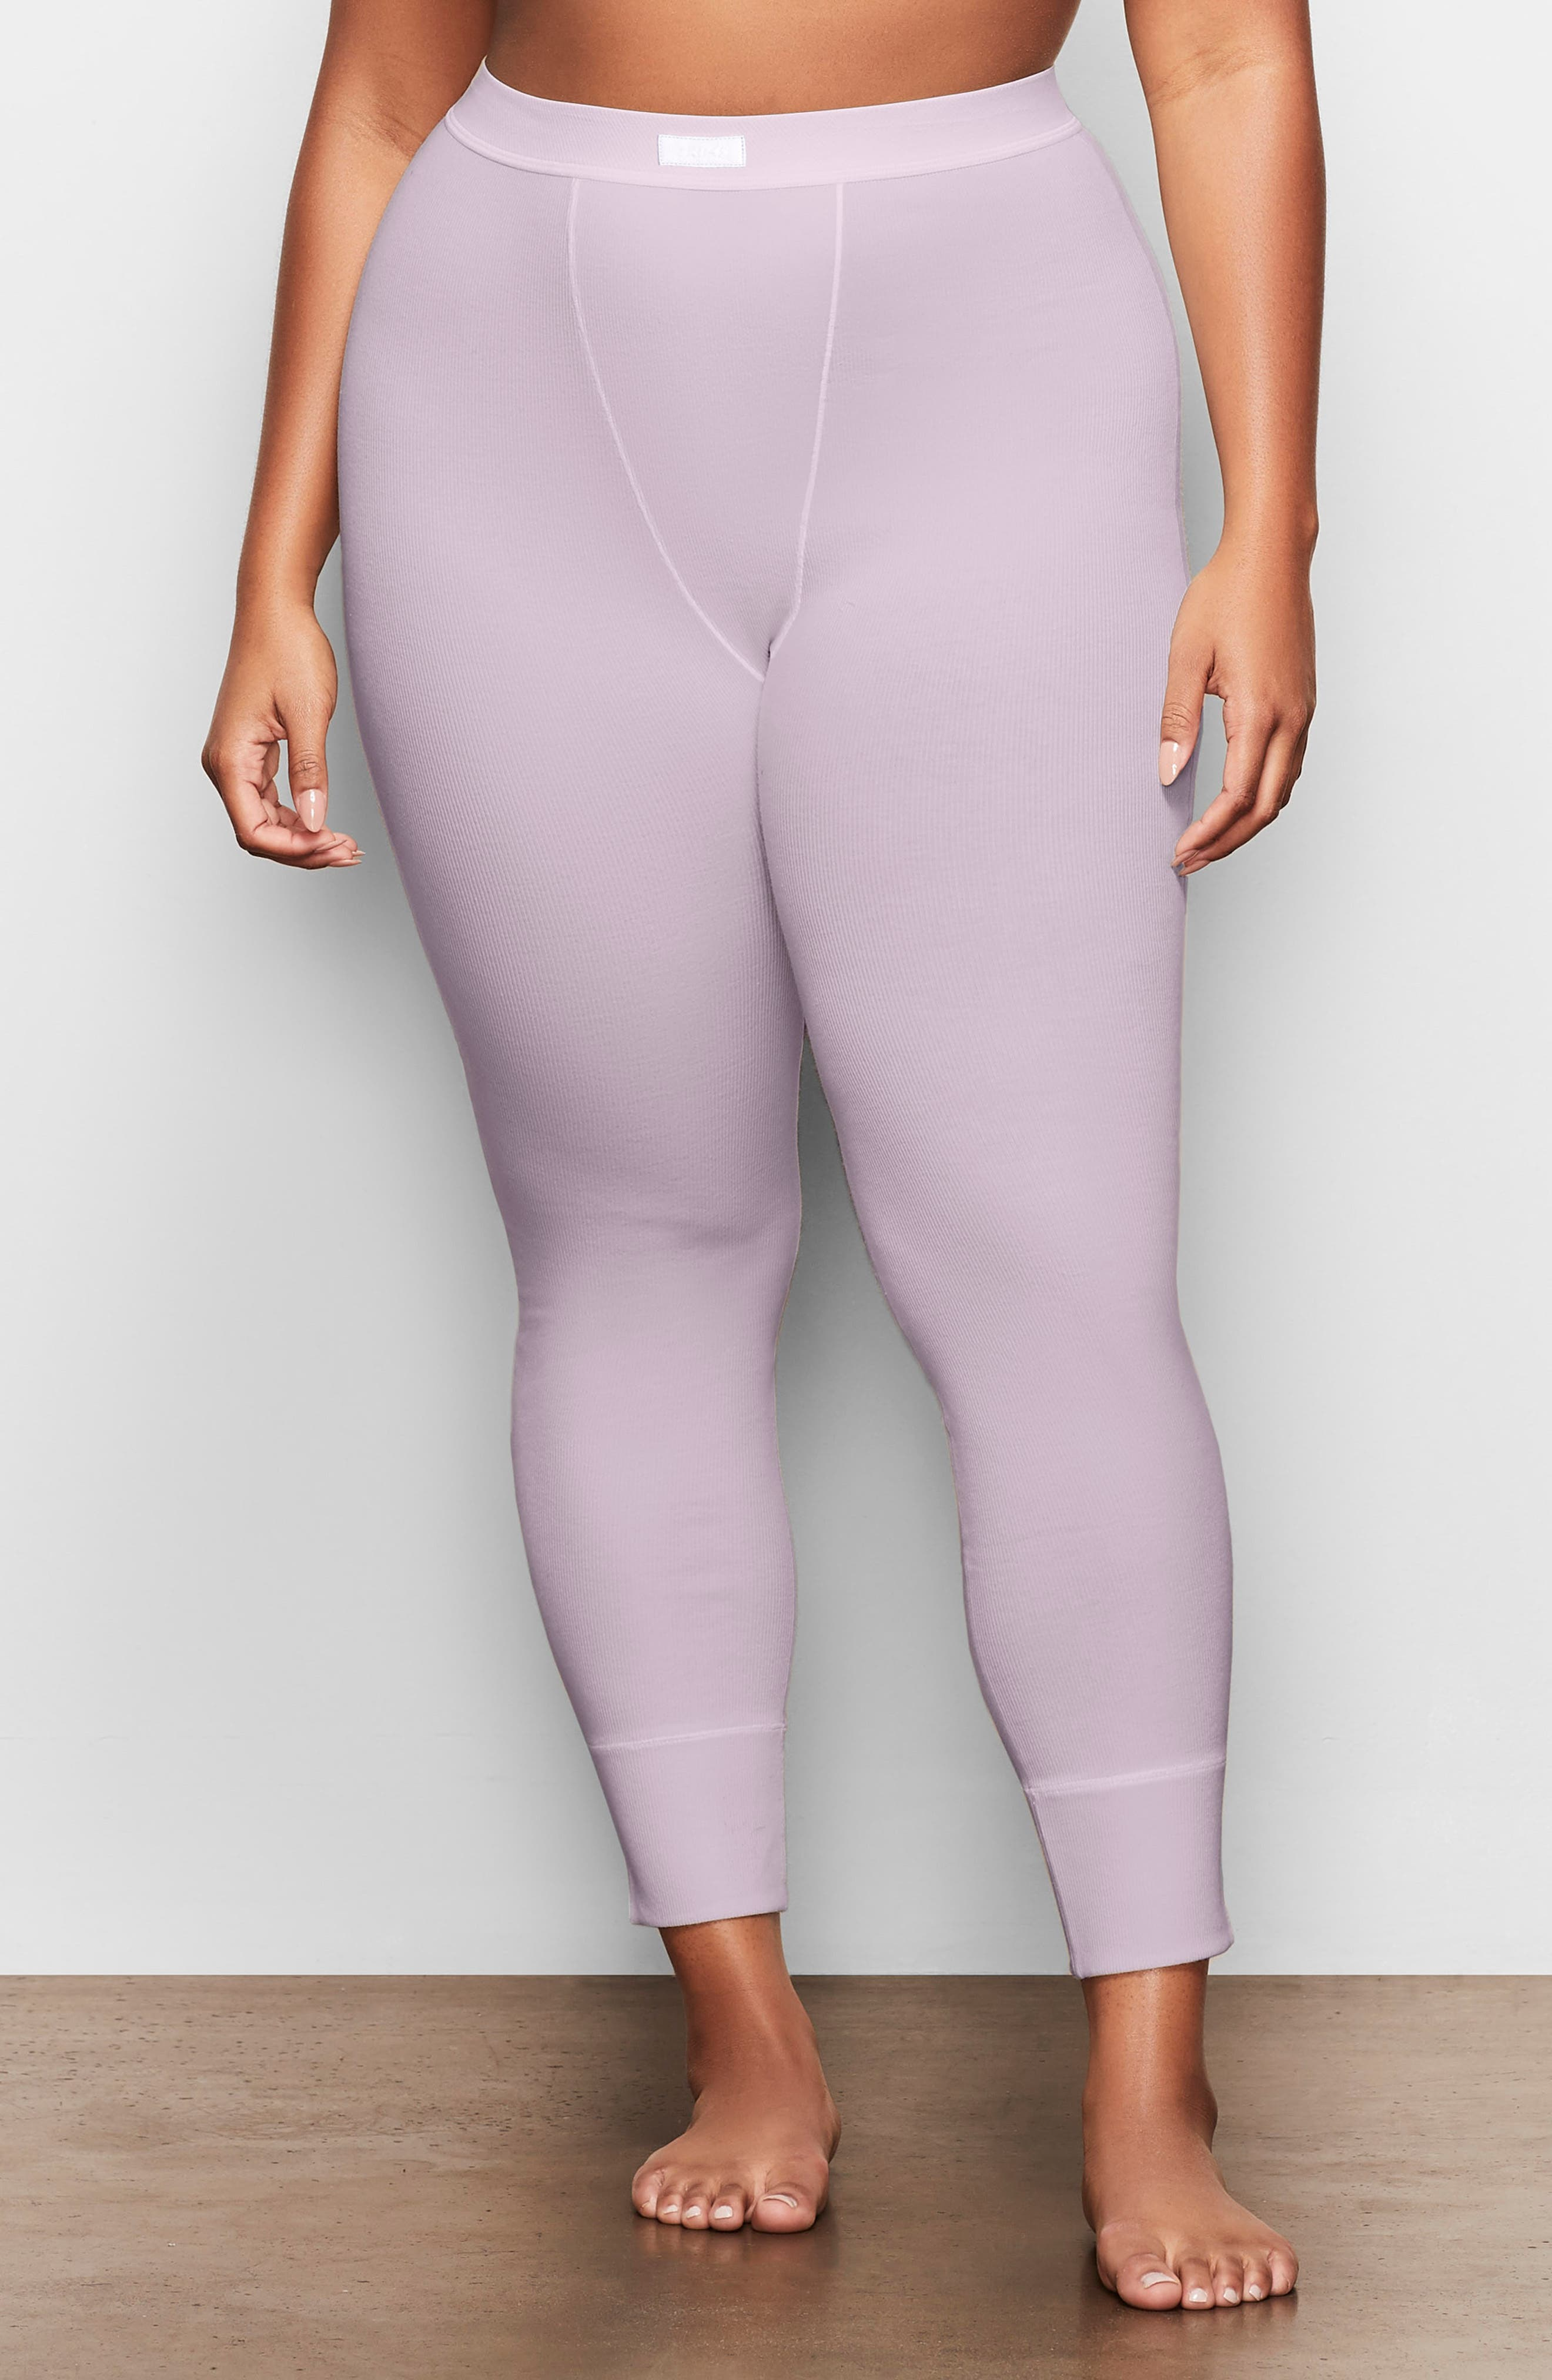 Soft thermal leggings that hug the body yet allow skin to breathe with ribbed stretch cotton are from Kim Kardashian West\\\'s highly sought-out SKIMS. Available in a range of five complementary colors, this comfortable style with a no-cut design and cover-stitch details, is destined to be a part of your regular lounge rotation. Style Name: Skims Cotton Rib Thermal Leggings (Regular & Plus Size). Style Number: 6016006. Available in stores.